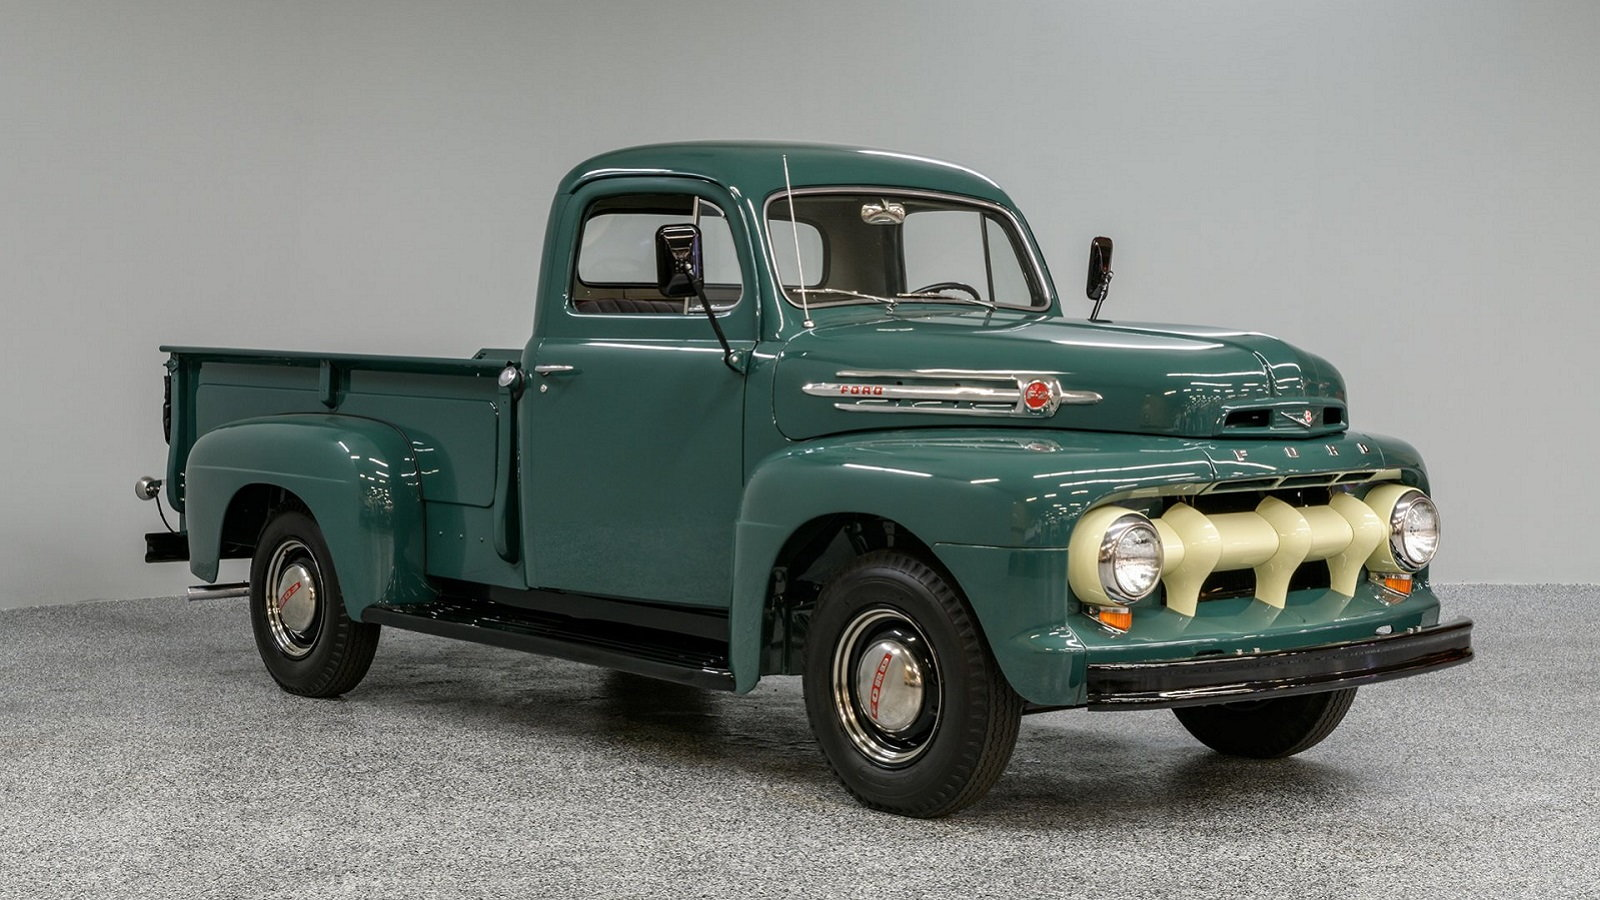 Immaculately Restored '52 Ford F2 Looks Too Good to Be True